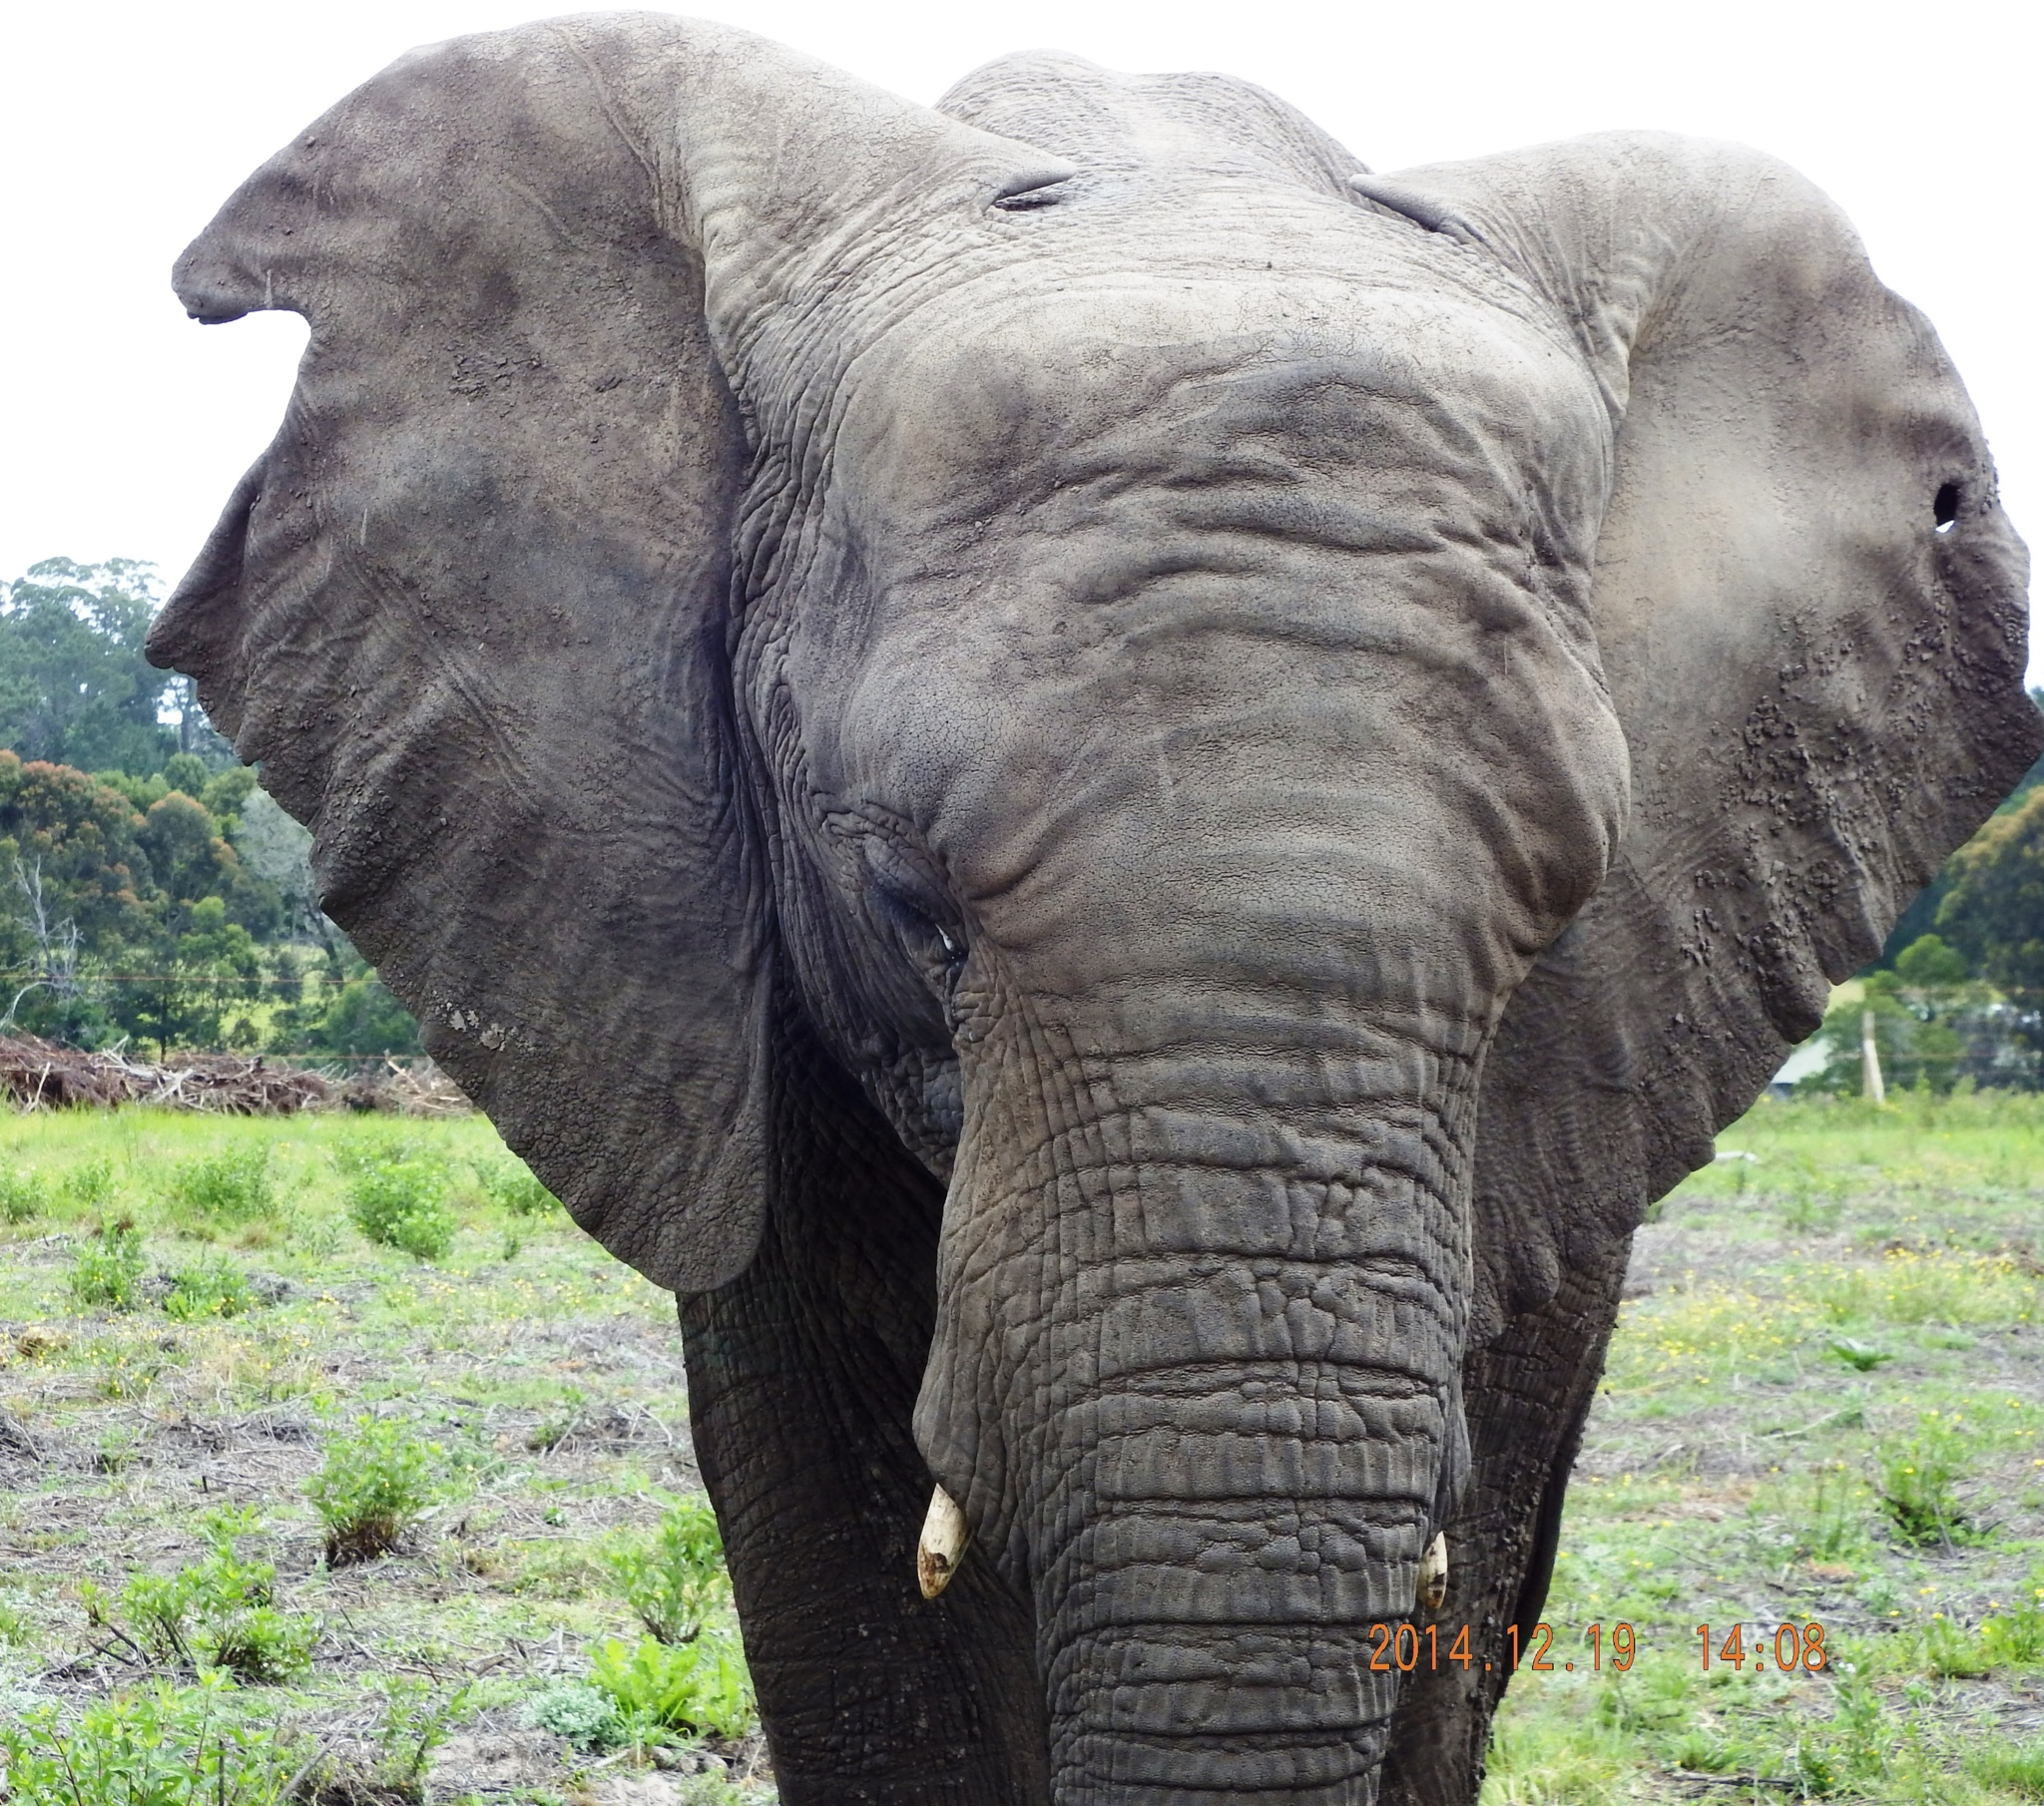 Sally the female at Knysna Elephant Park by Japie van der Berg